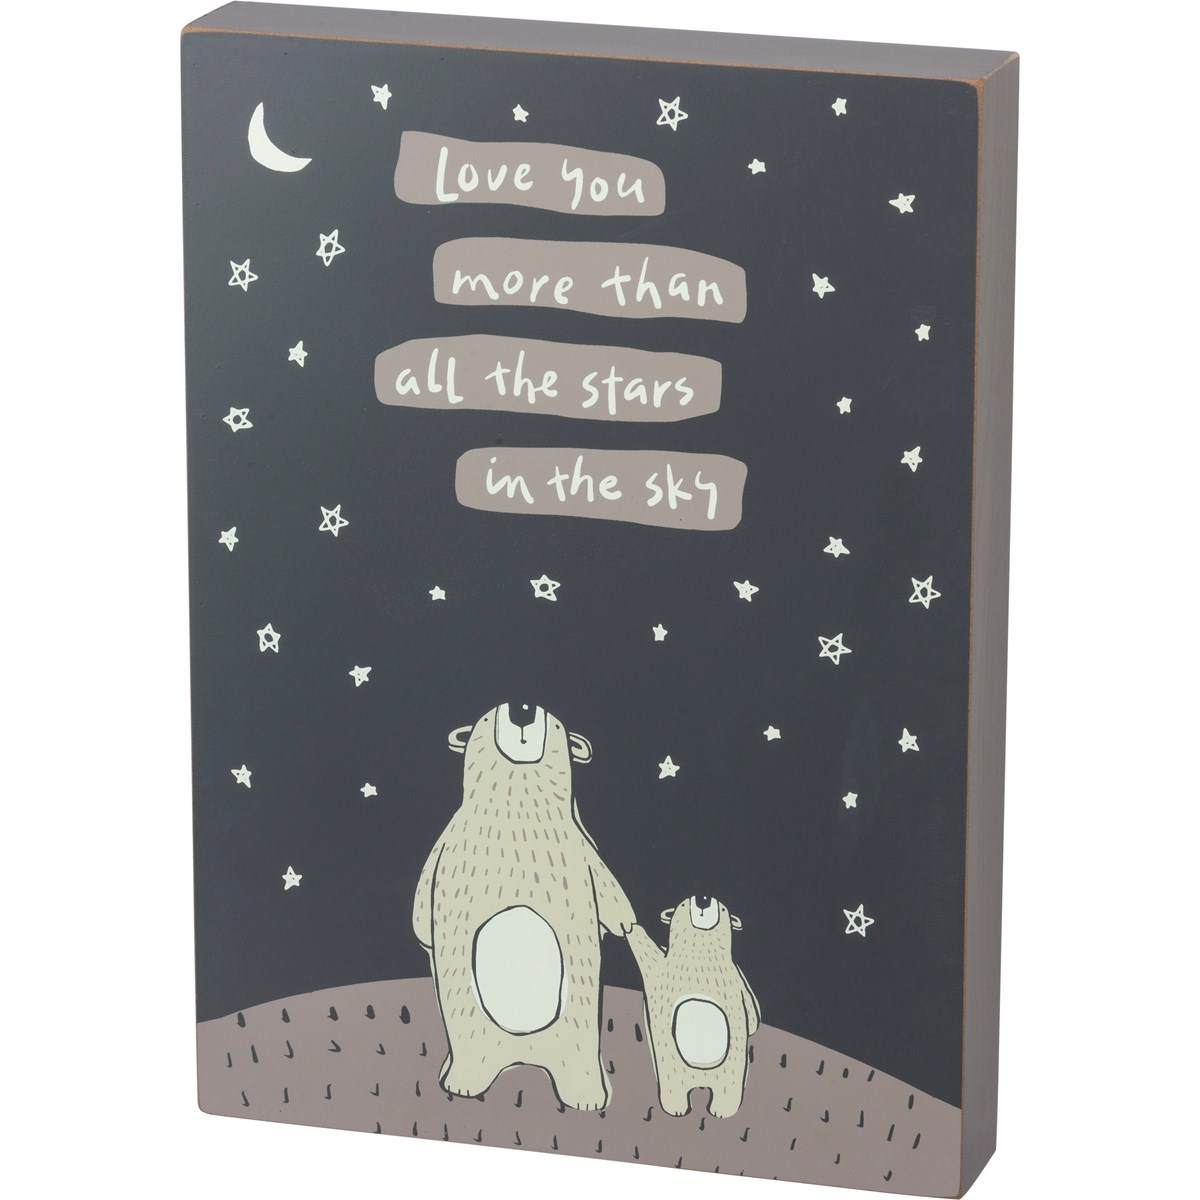 "Box Sign - Love You More Than All The Stars - 10"" x 14"" x 1.75"" - Wood"